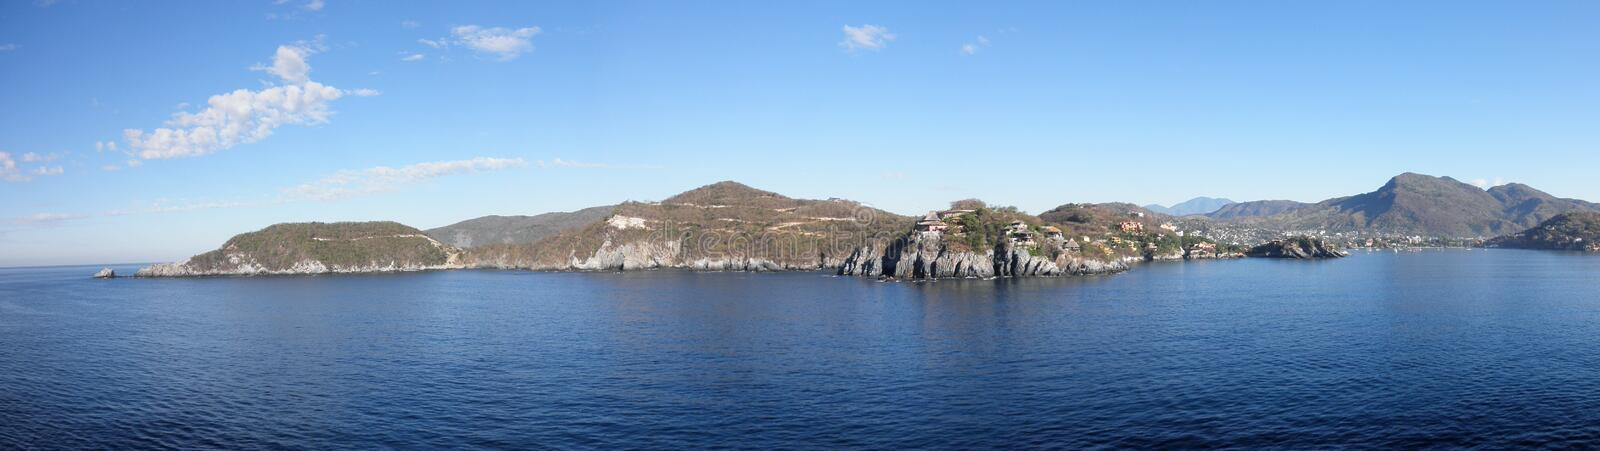 Download Shoreline Of Harbor Opening In Zihuatanejo, Mexico Stock Image - Image: 19942769